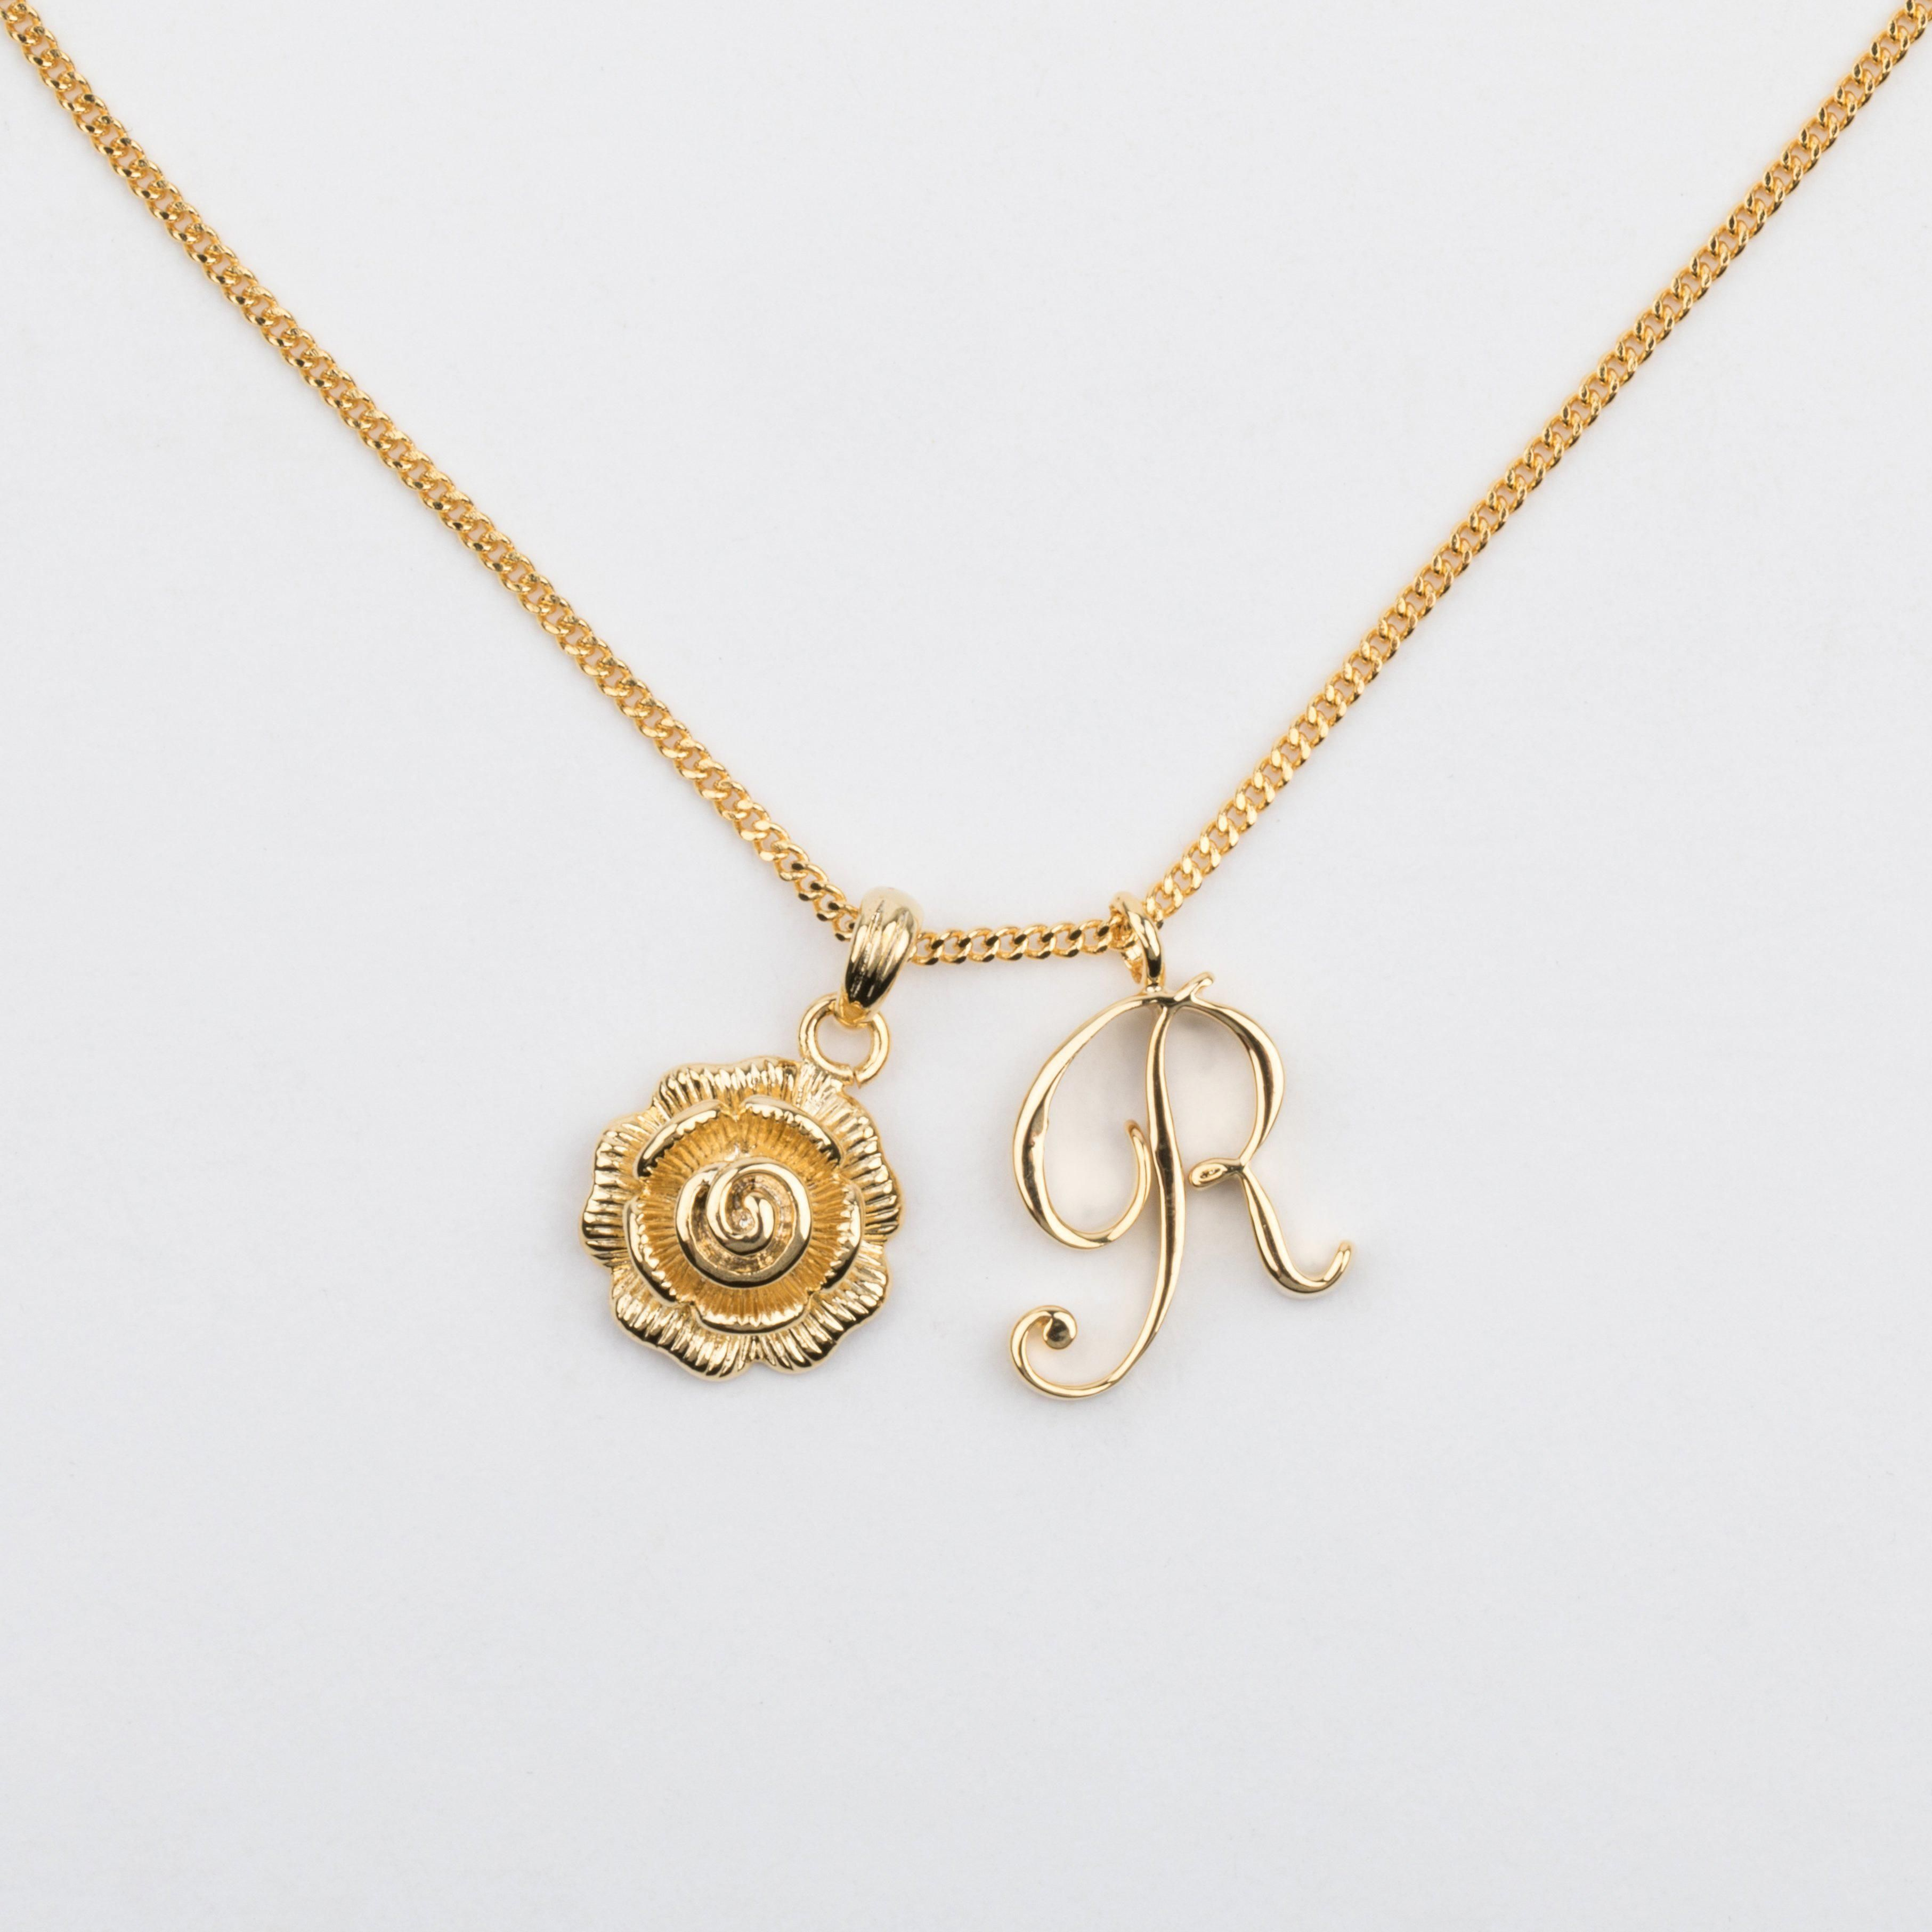 R Initial Necklace With Rose Pendant Initialnecklace Initial Necklace Gold Gold Bar Necklace Initial Necklace